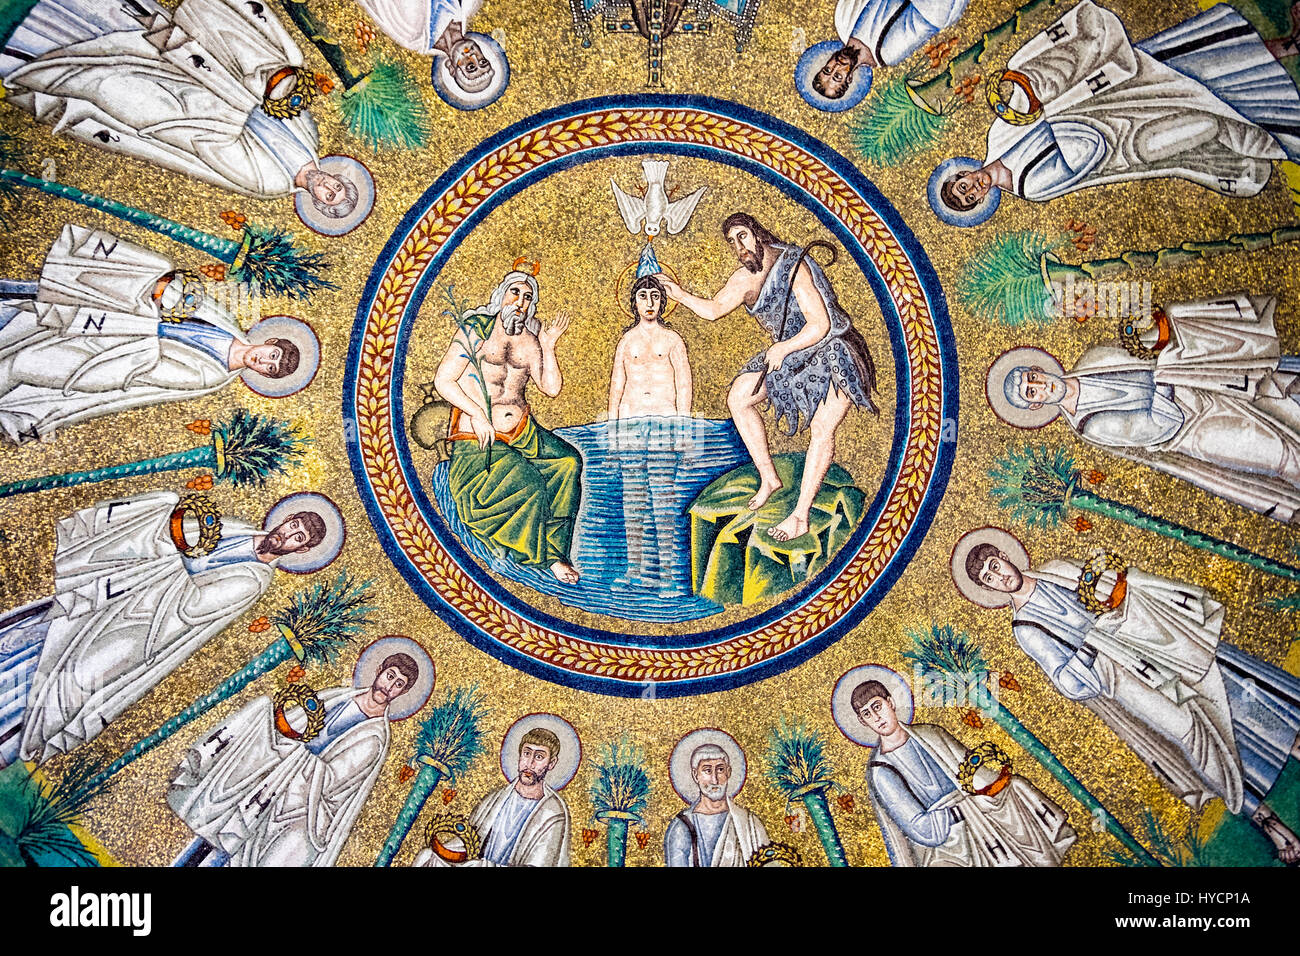 Detail of the mosaic of the baptism of Jesus by Saint John the Baptist in the Arian Baptistry of Ravenna, Italy - Stock Image